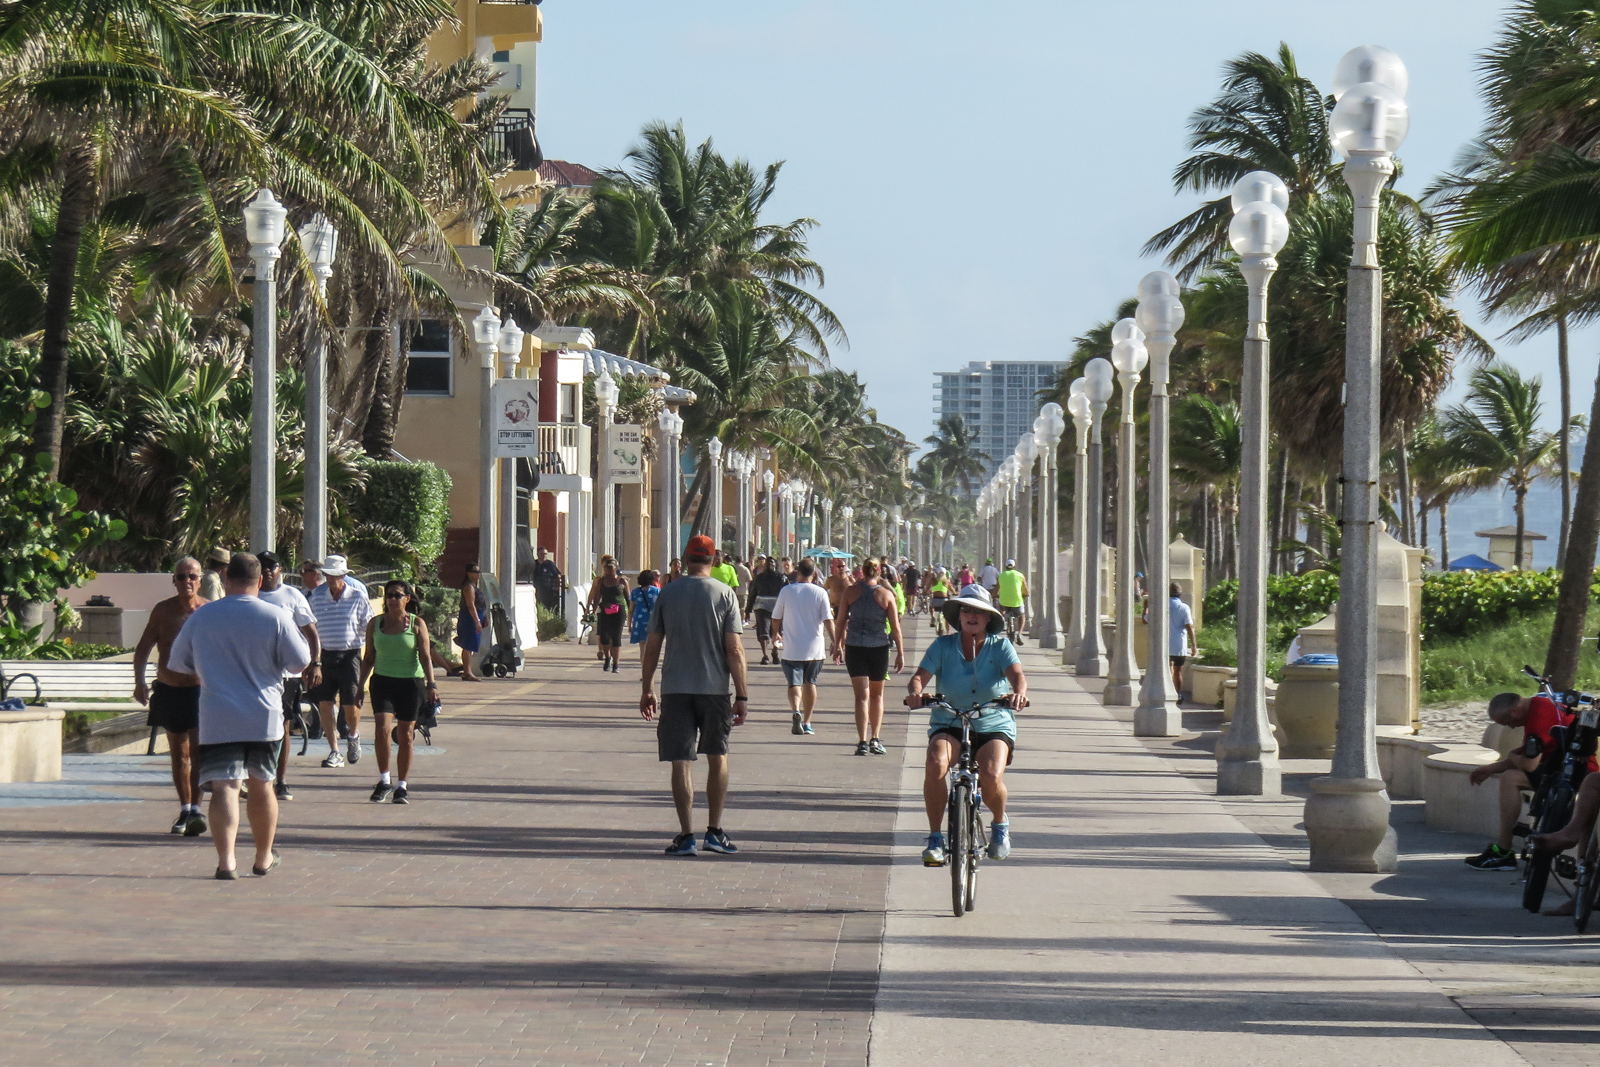 Top things to do in Fort Lauderdale: The best Fort Lauderdale Attractions